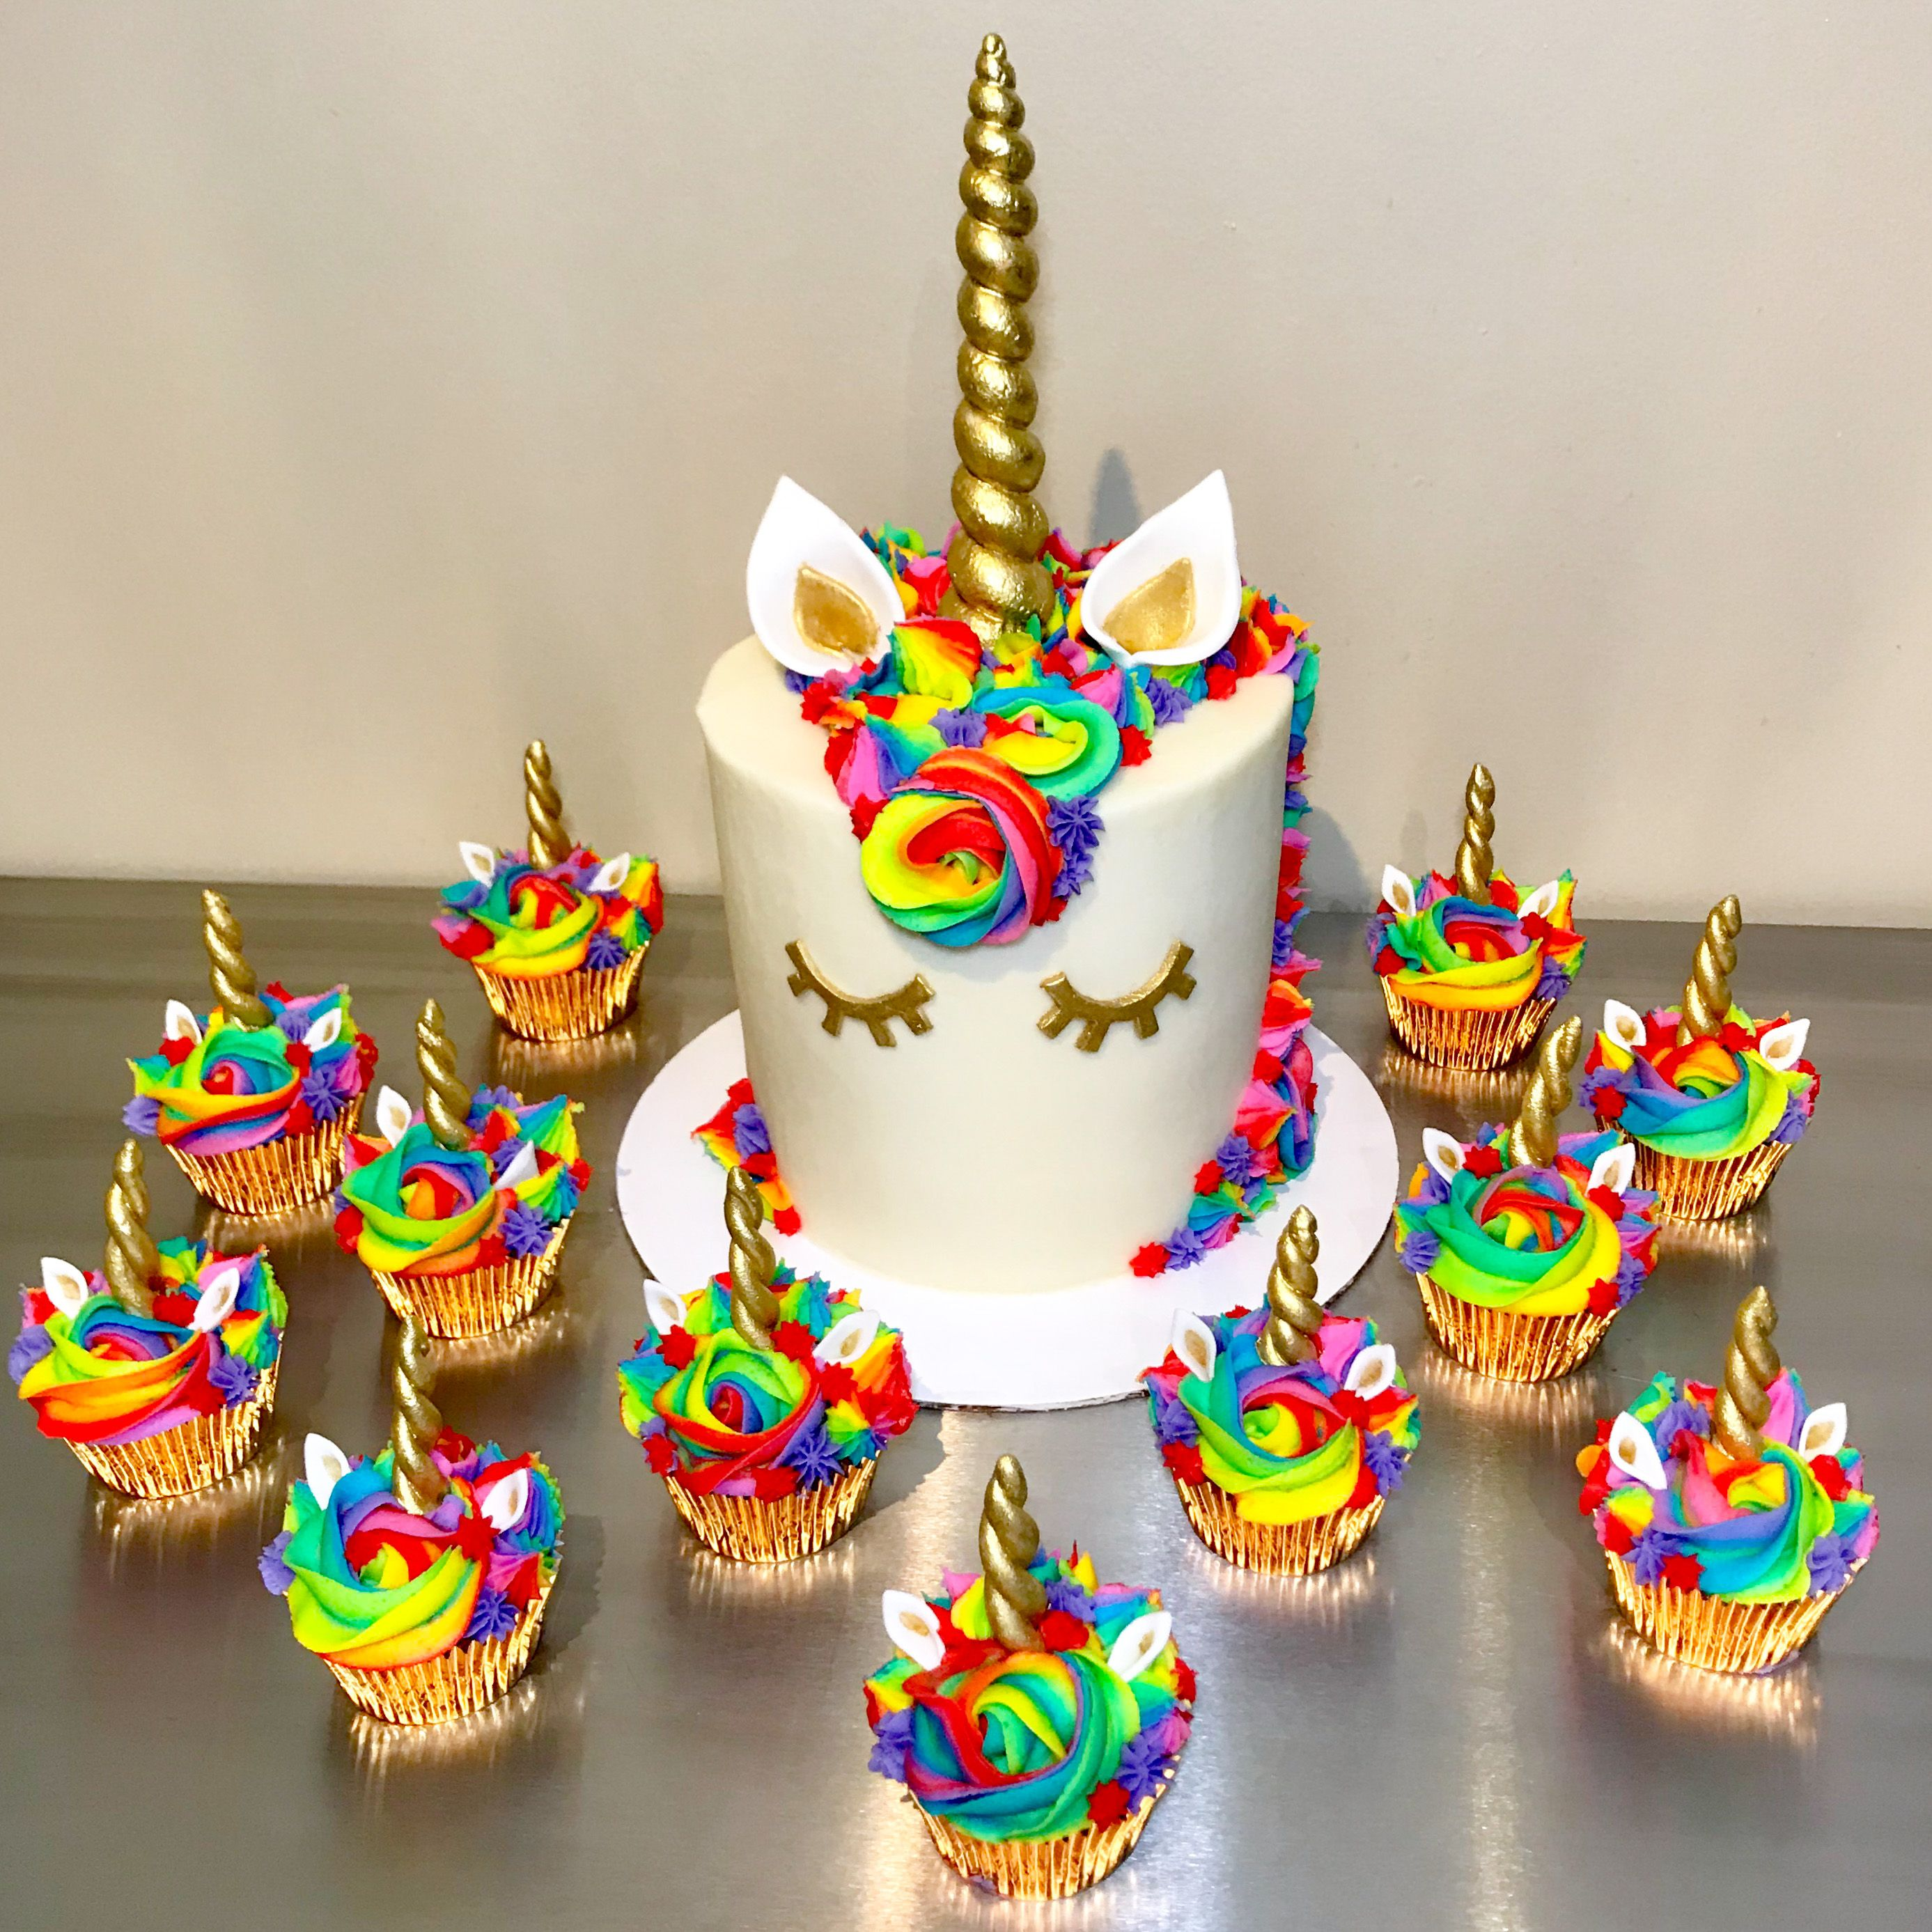 Rainbow Unicorn Cake And Cupcakes From Sakurabakingco